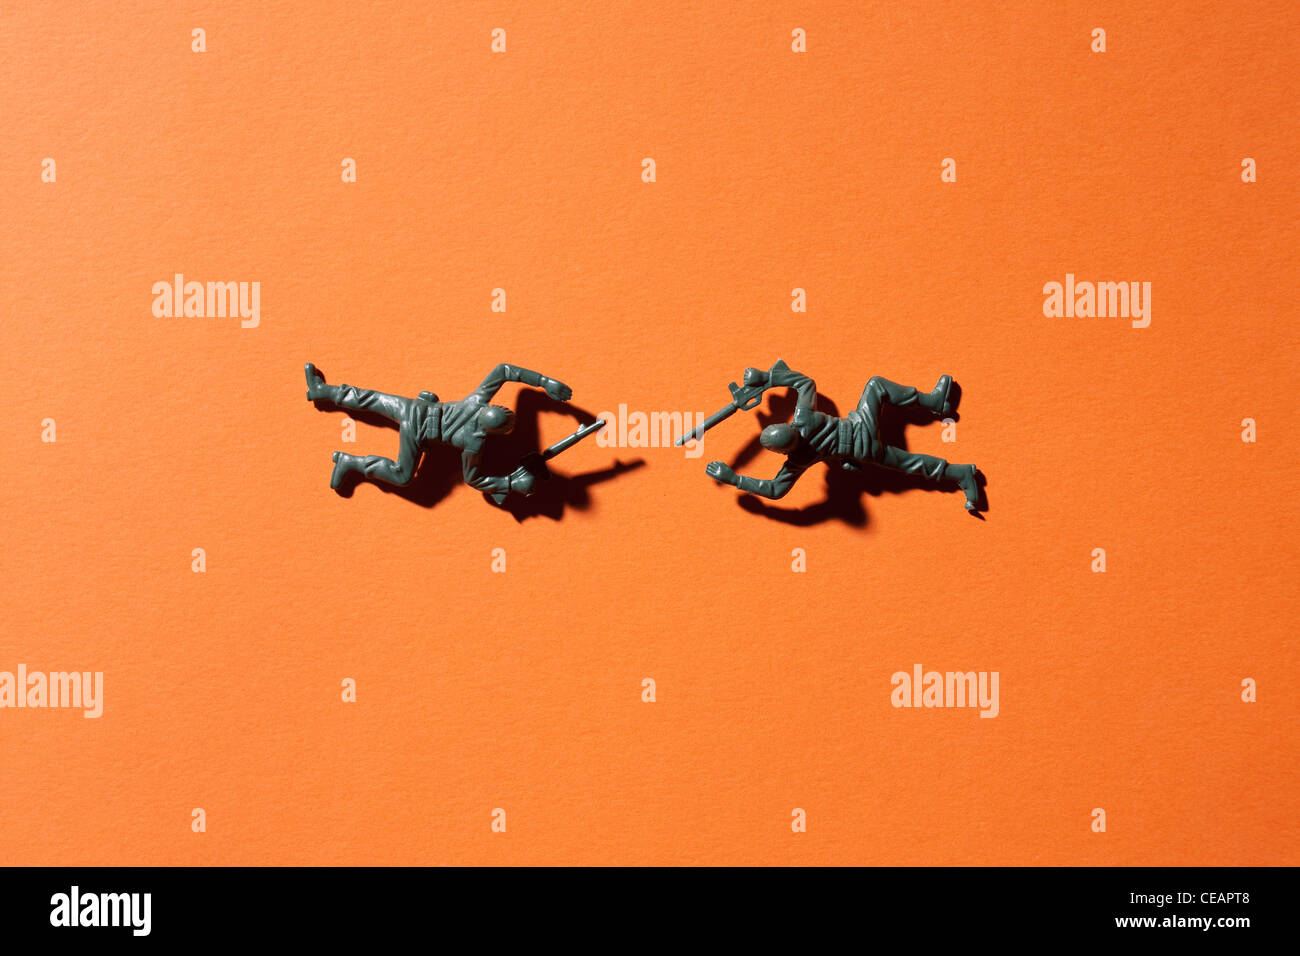 Two toy soldiers on orange background - Stock Image